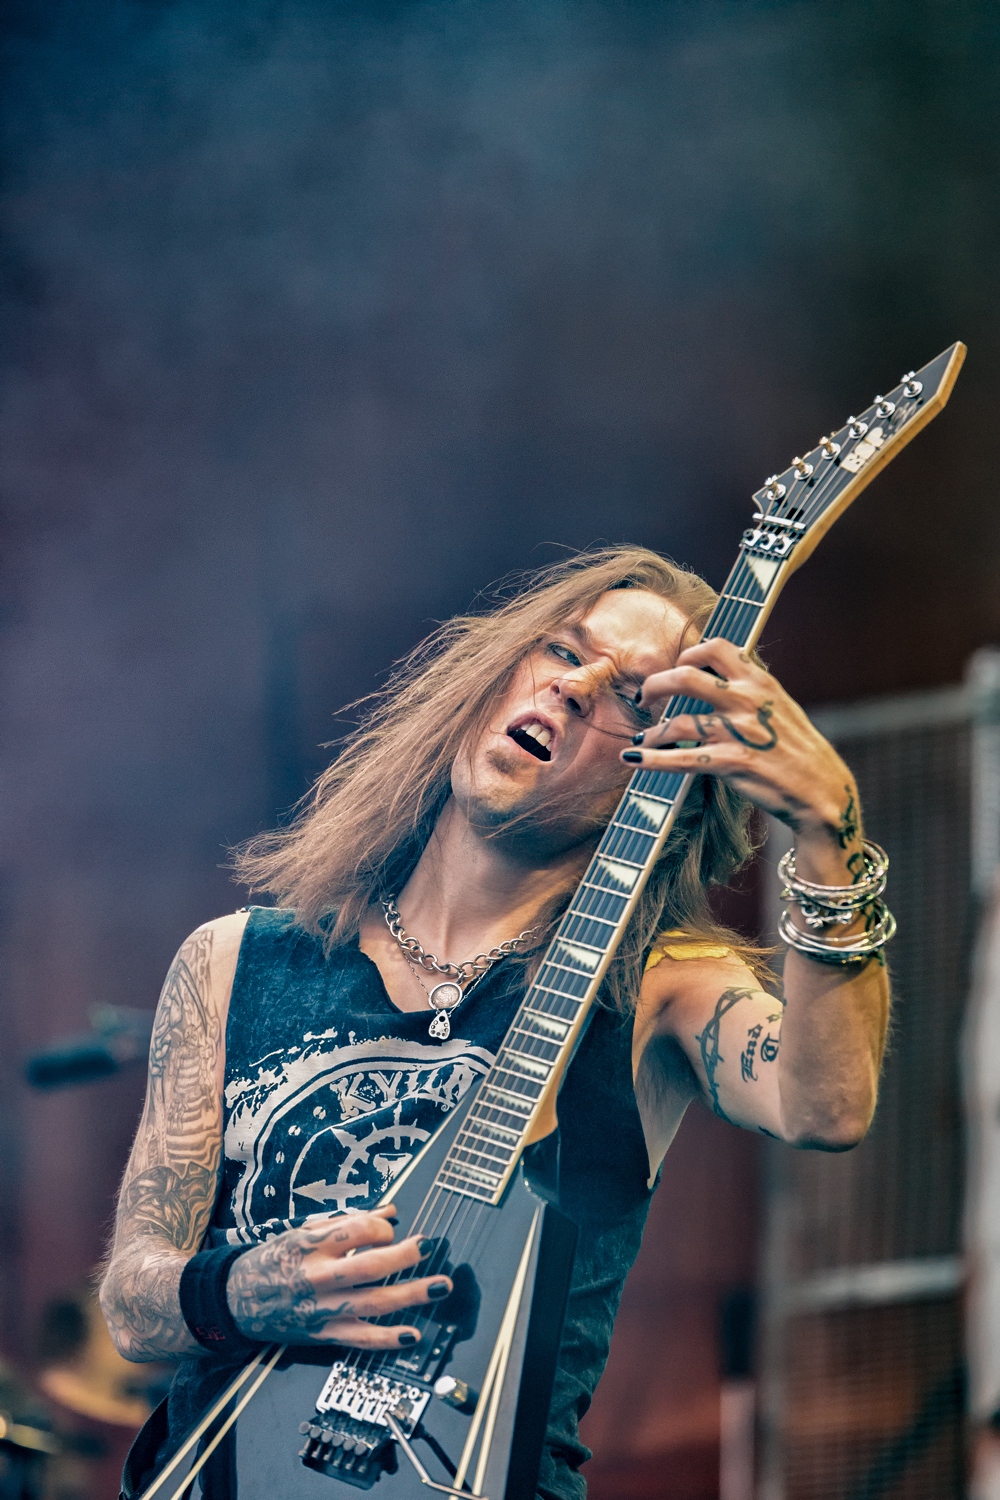 REBELPIX - Sami Turunen Photography / Children Of Bodom @ Tuska Festival, Helsinki